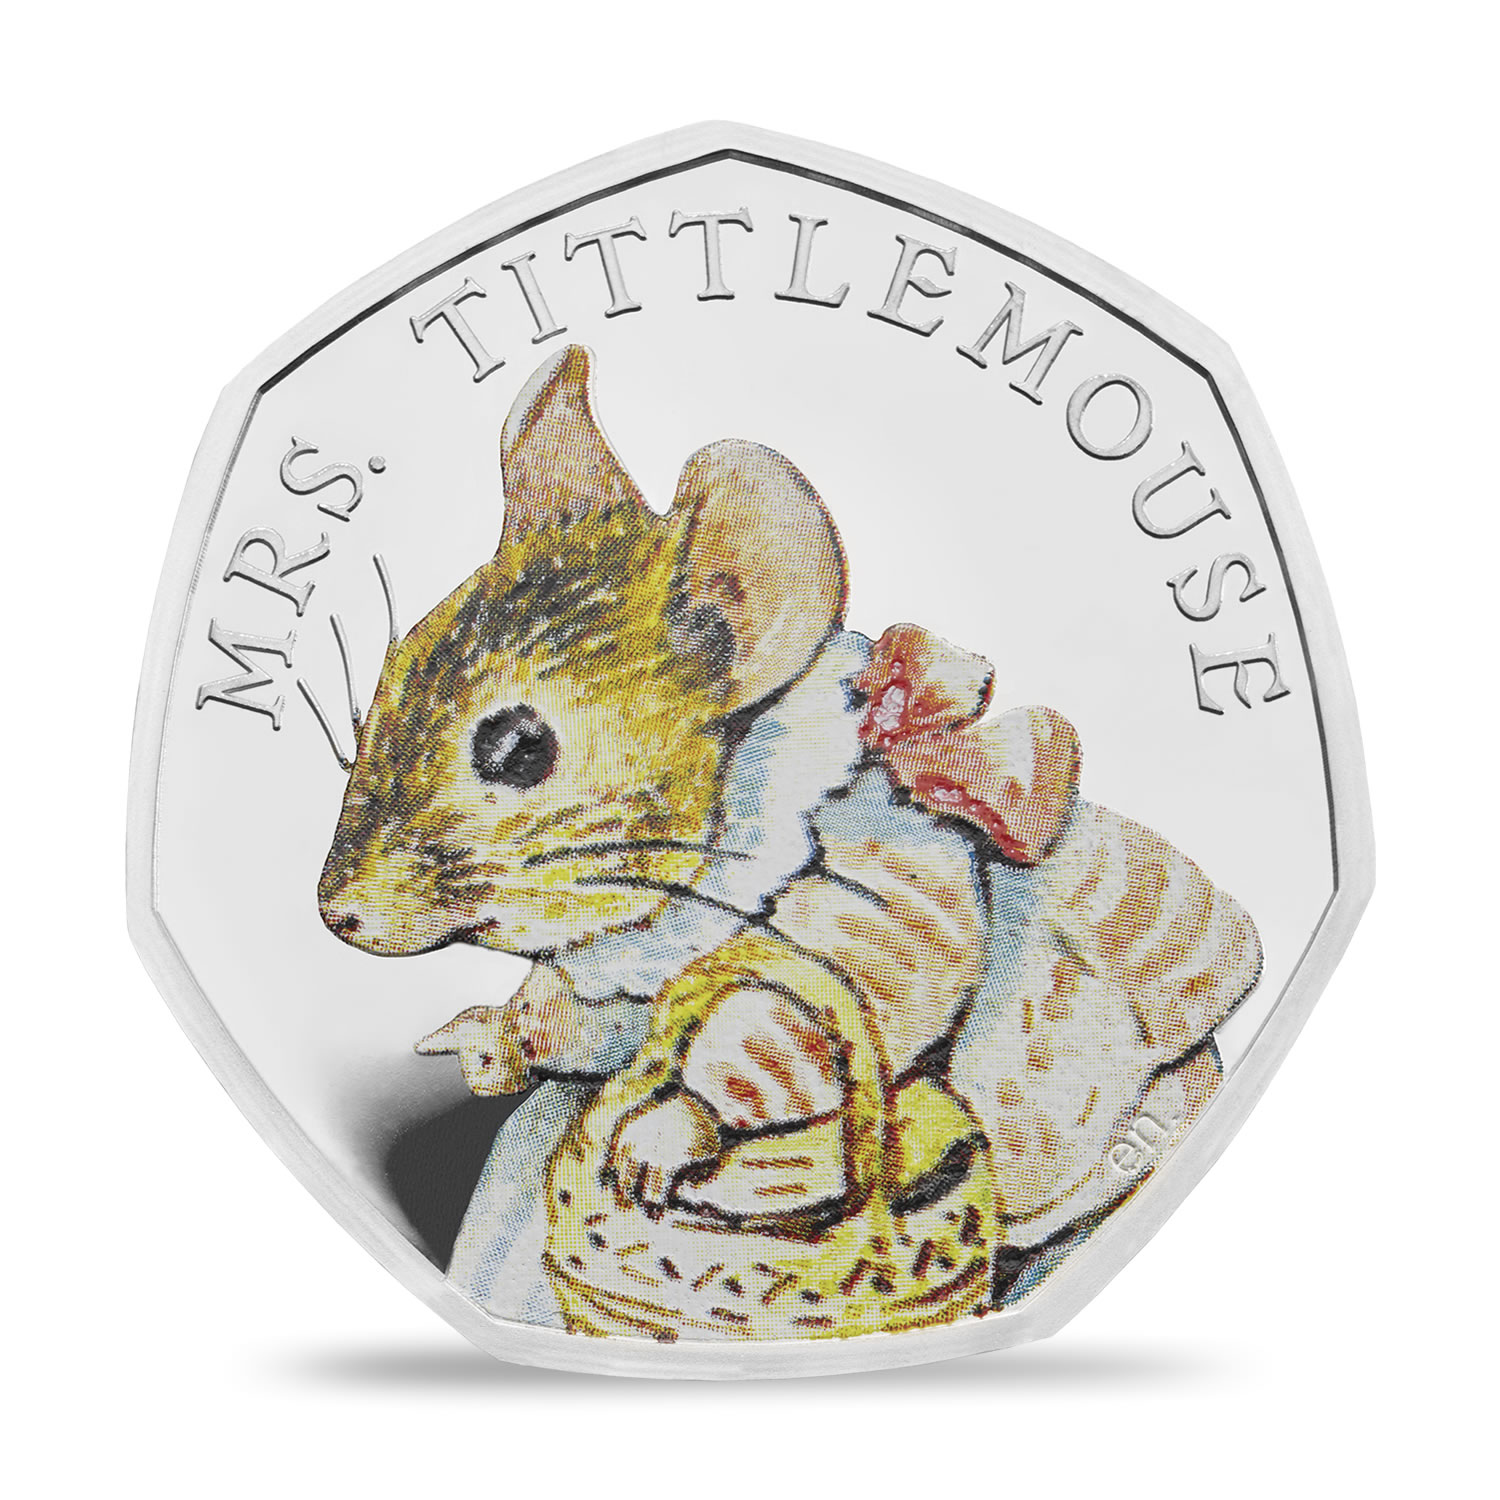 Mrs  Tittlemouse™ 2018 UK 50p Silver Proof Coin & Book Gift